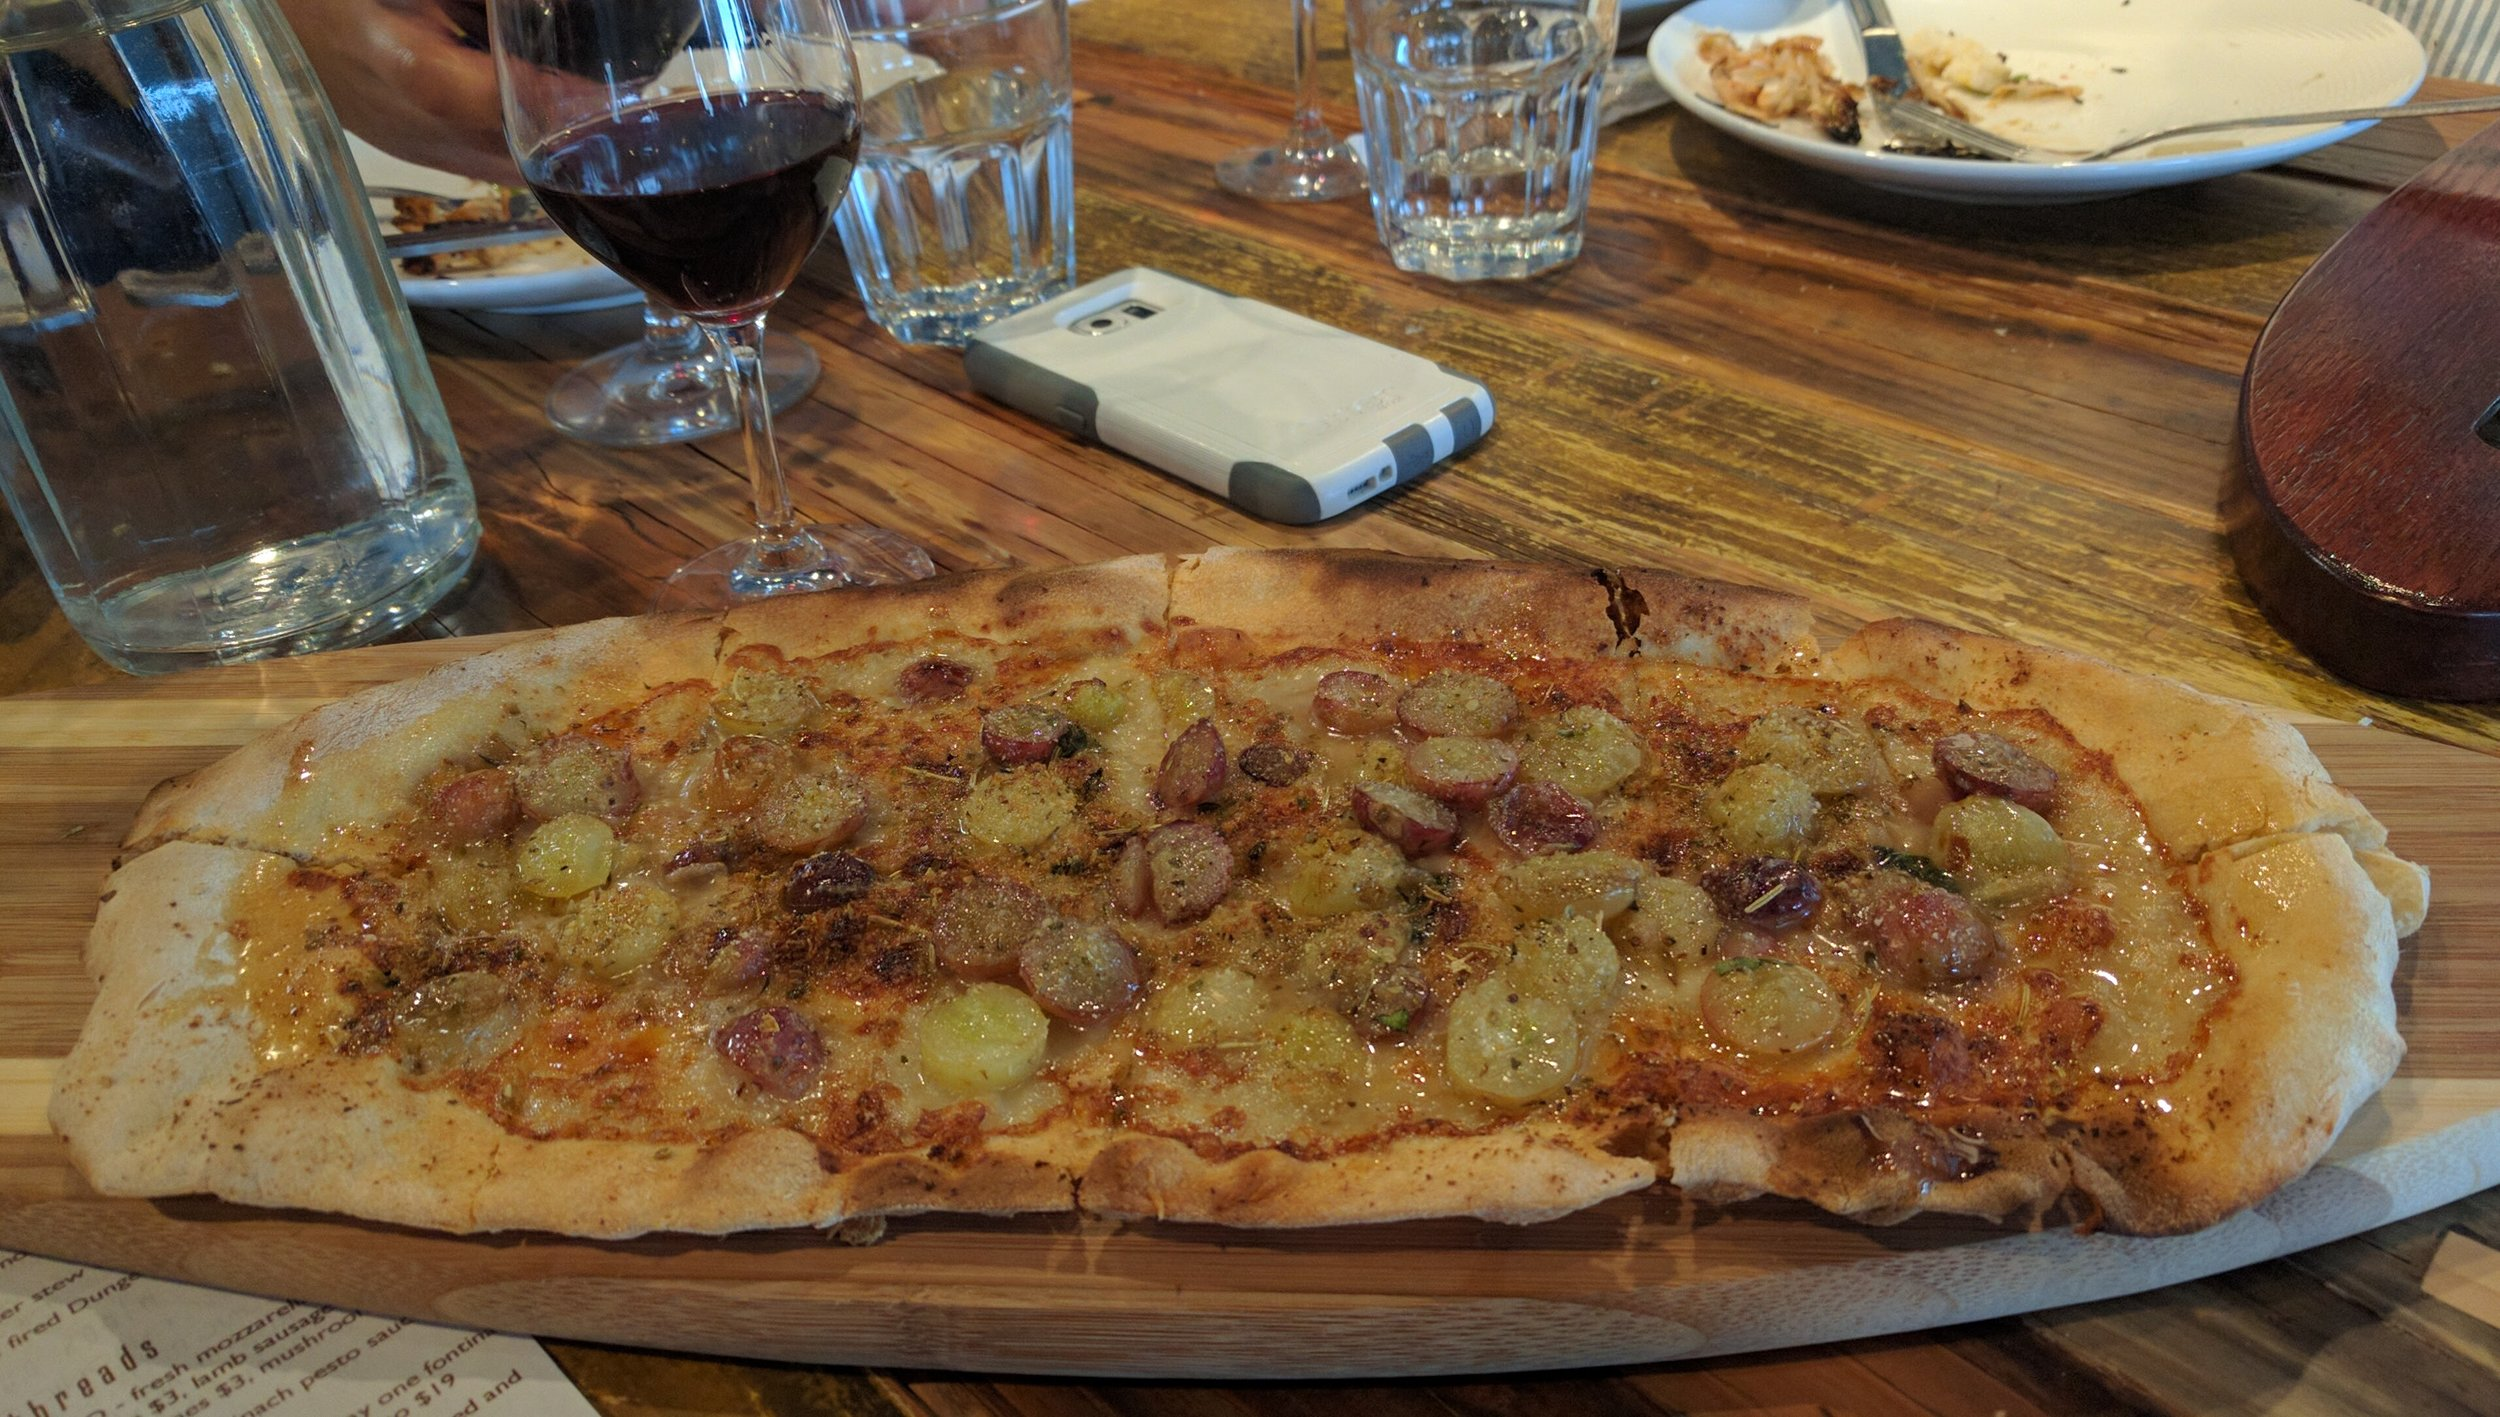 Wine lovers flatbread - gorgonzola and roasted grapes.